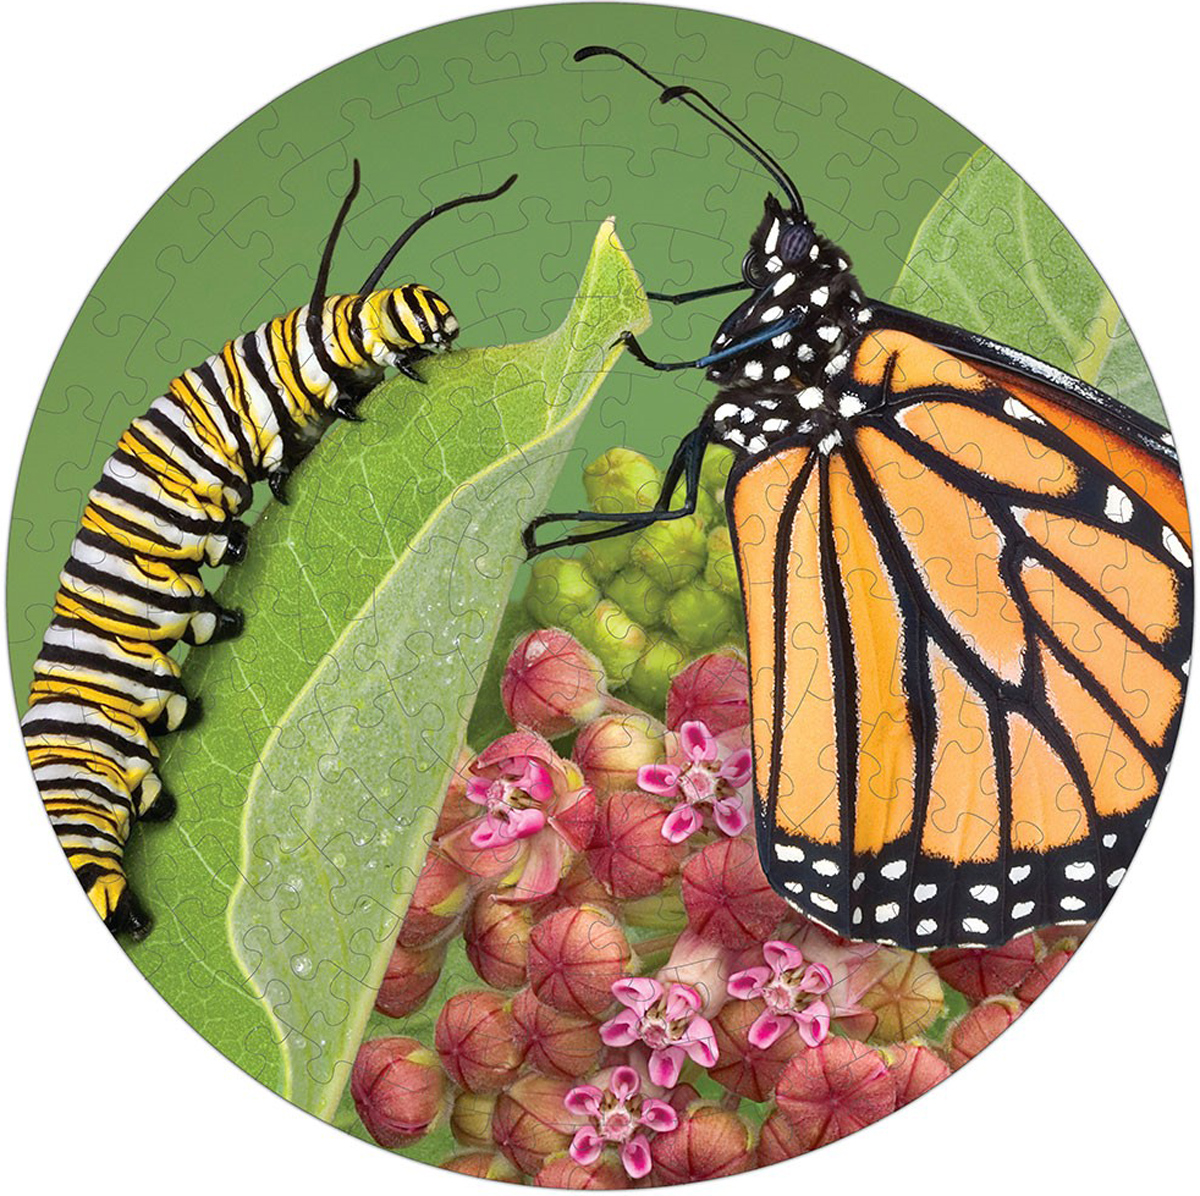 Puzzle A•Round: Monarch Butterfly Butterflies and Insects Shaped Puzzle